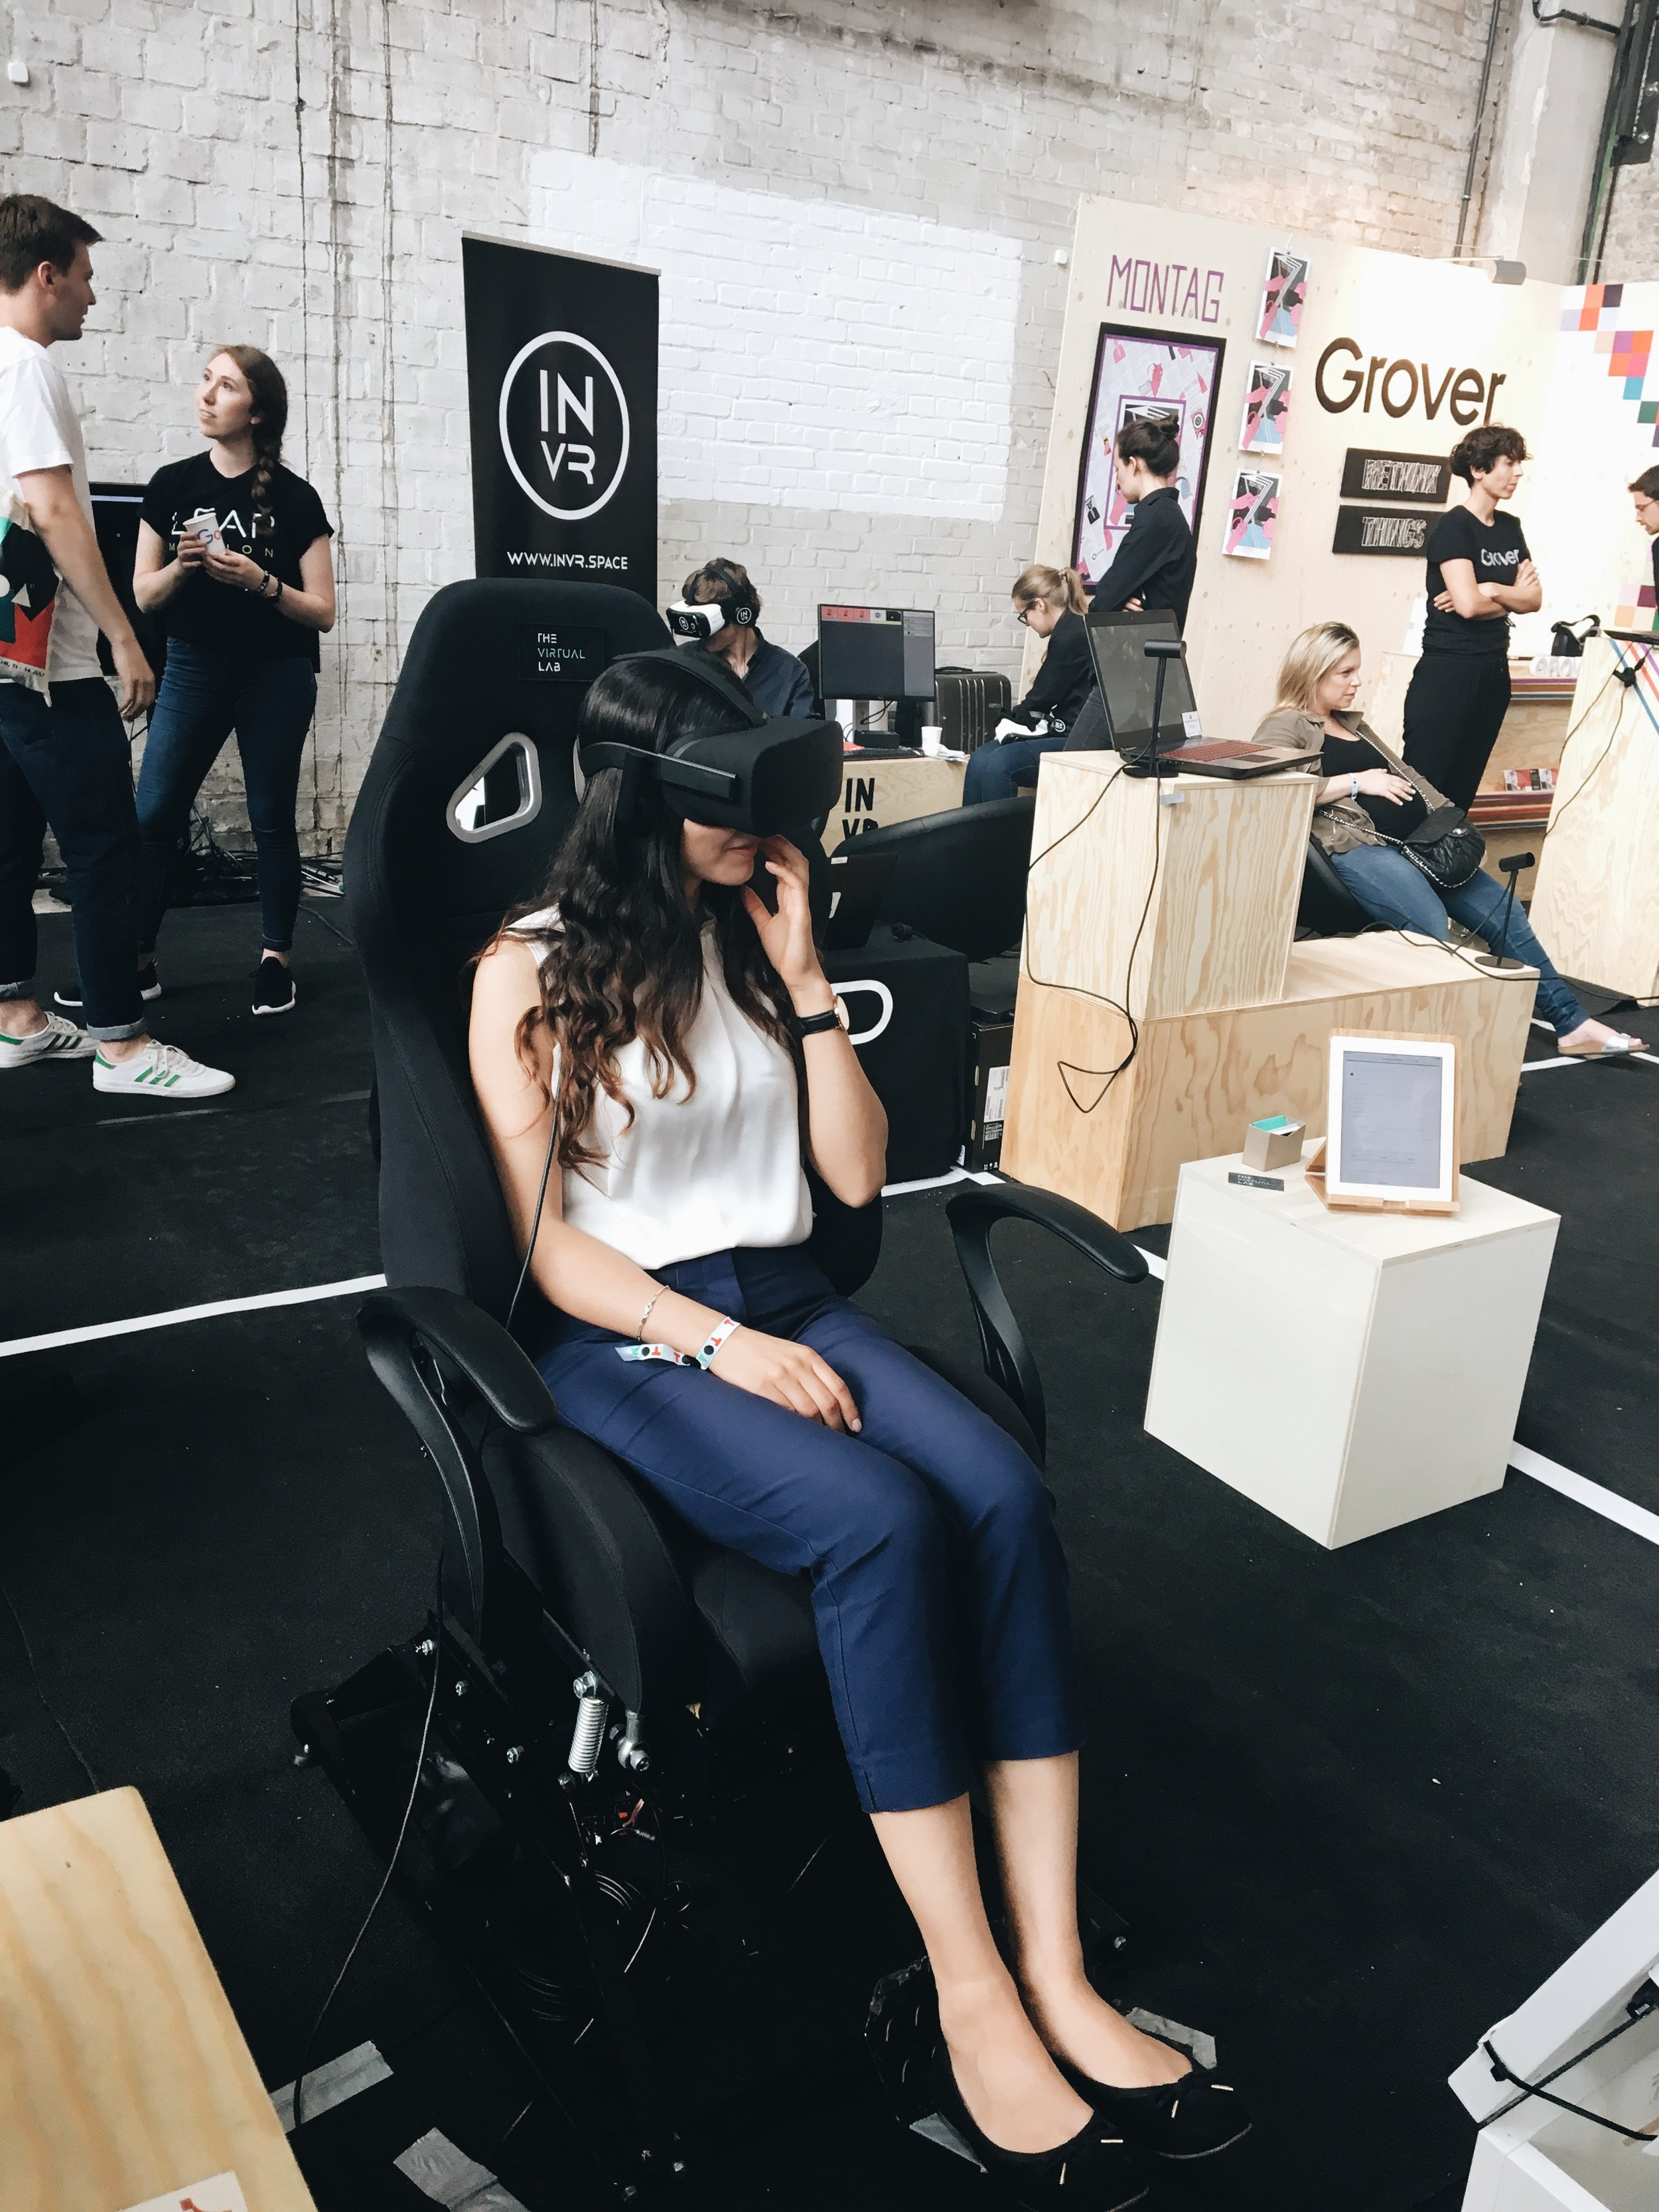 The Virtual Lab - Ogrecoaster - the ultimare VR experience